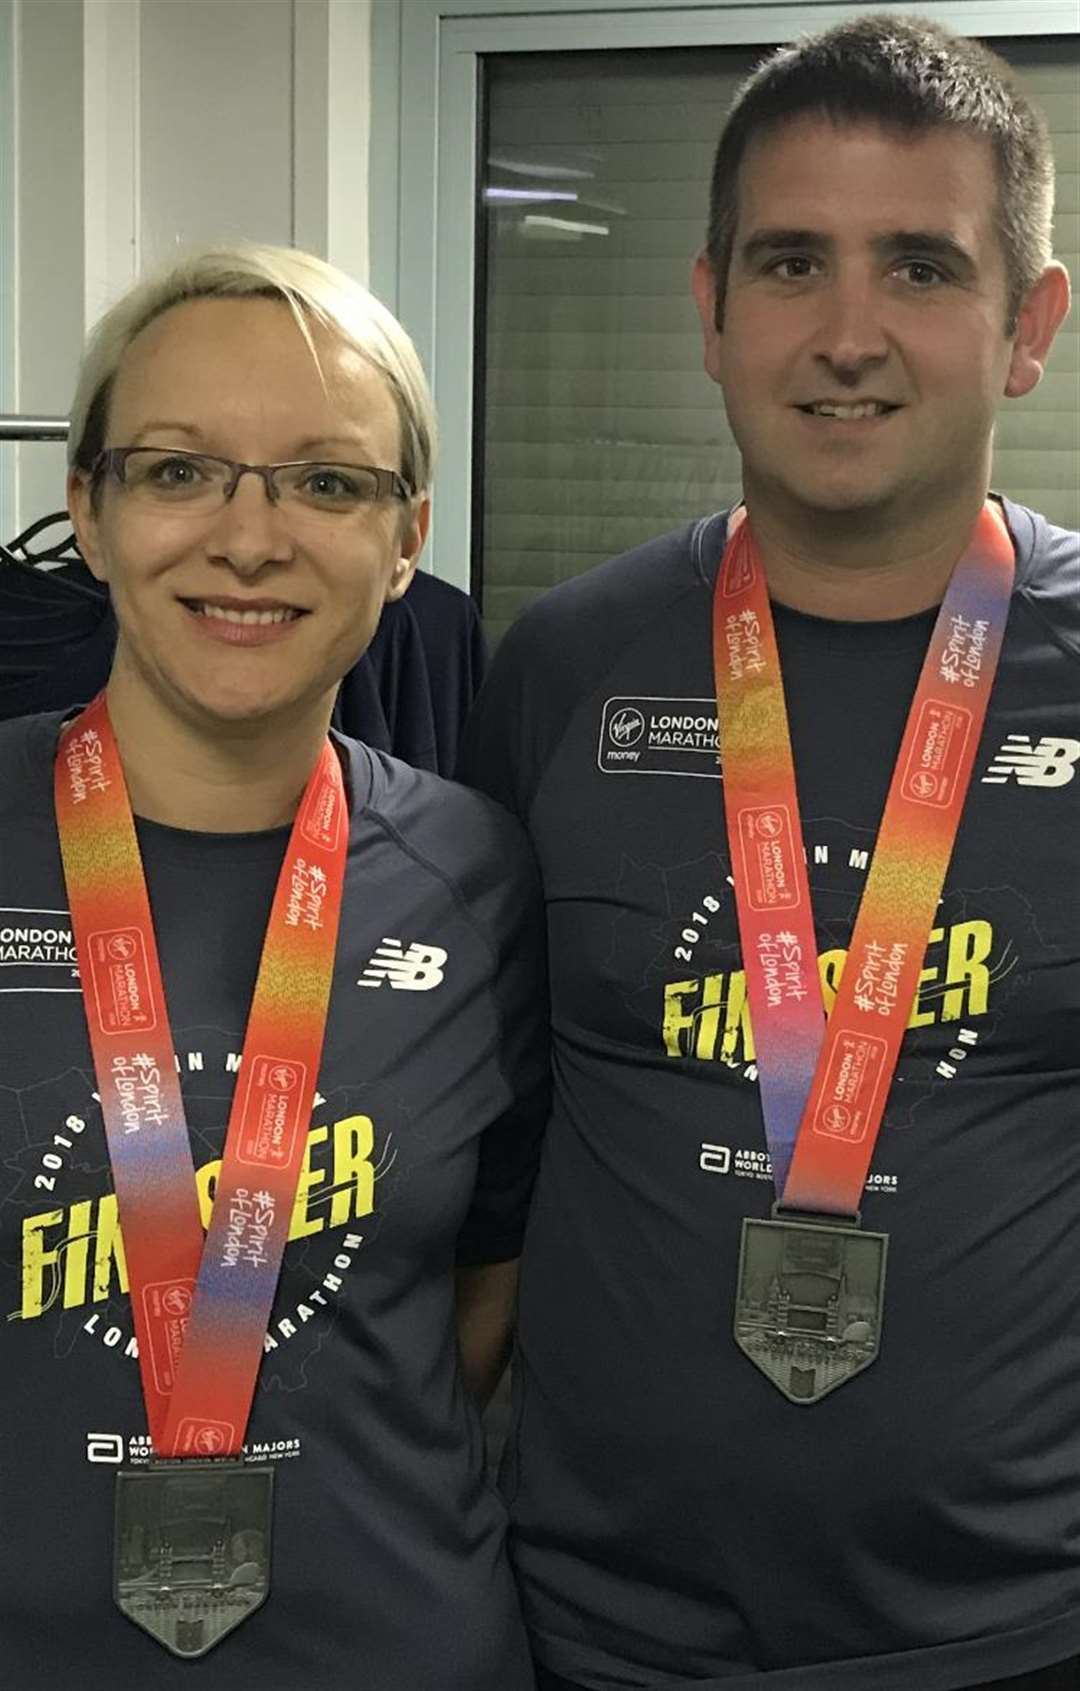 Breeze and Andy Rowlands, of Notfast, with their London Marathon medals